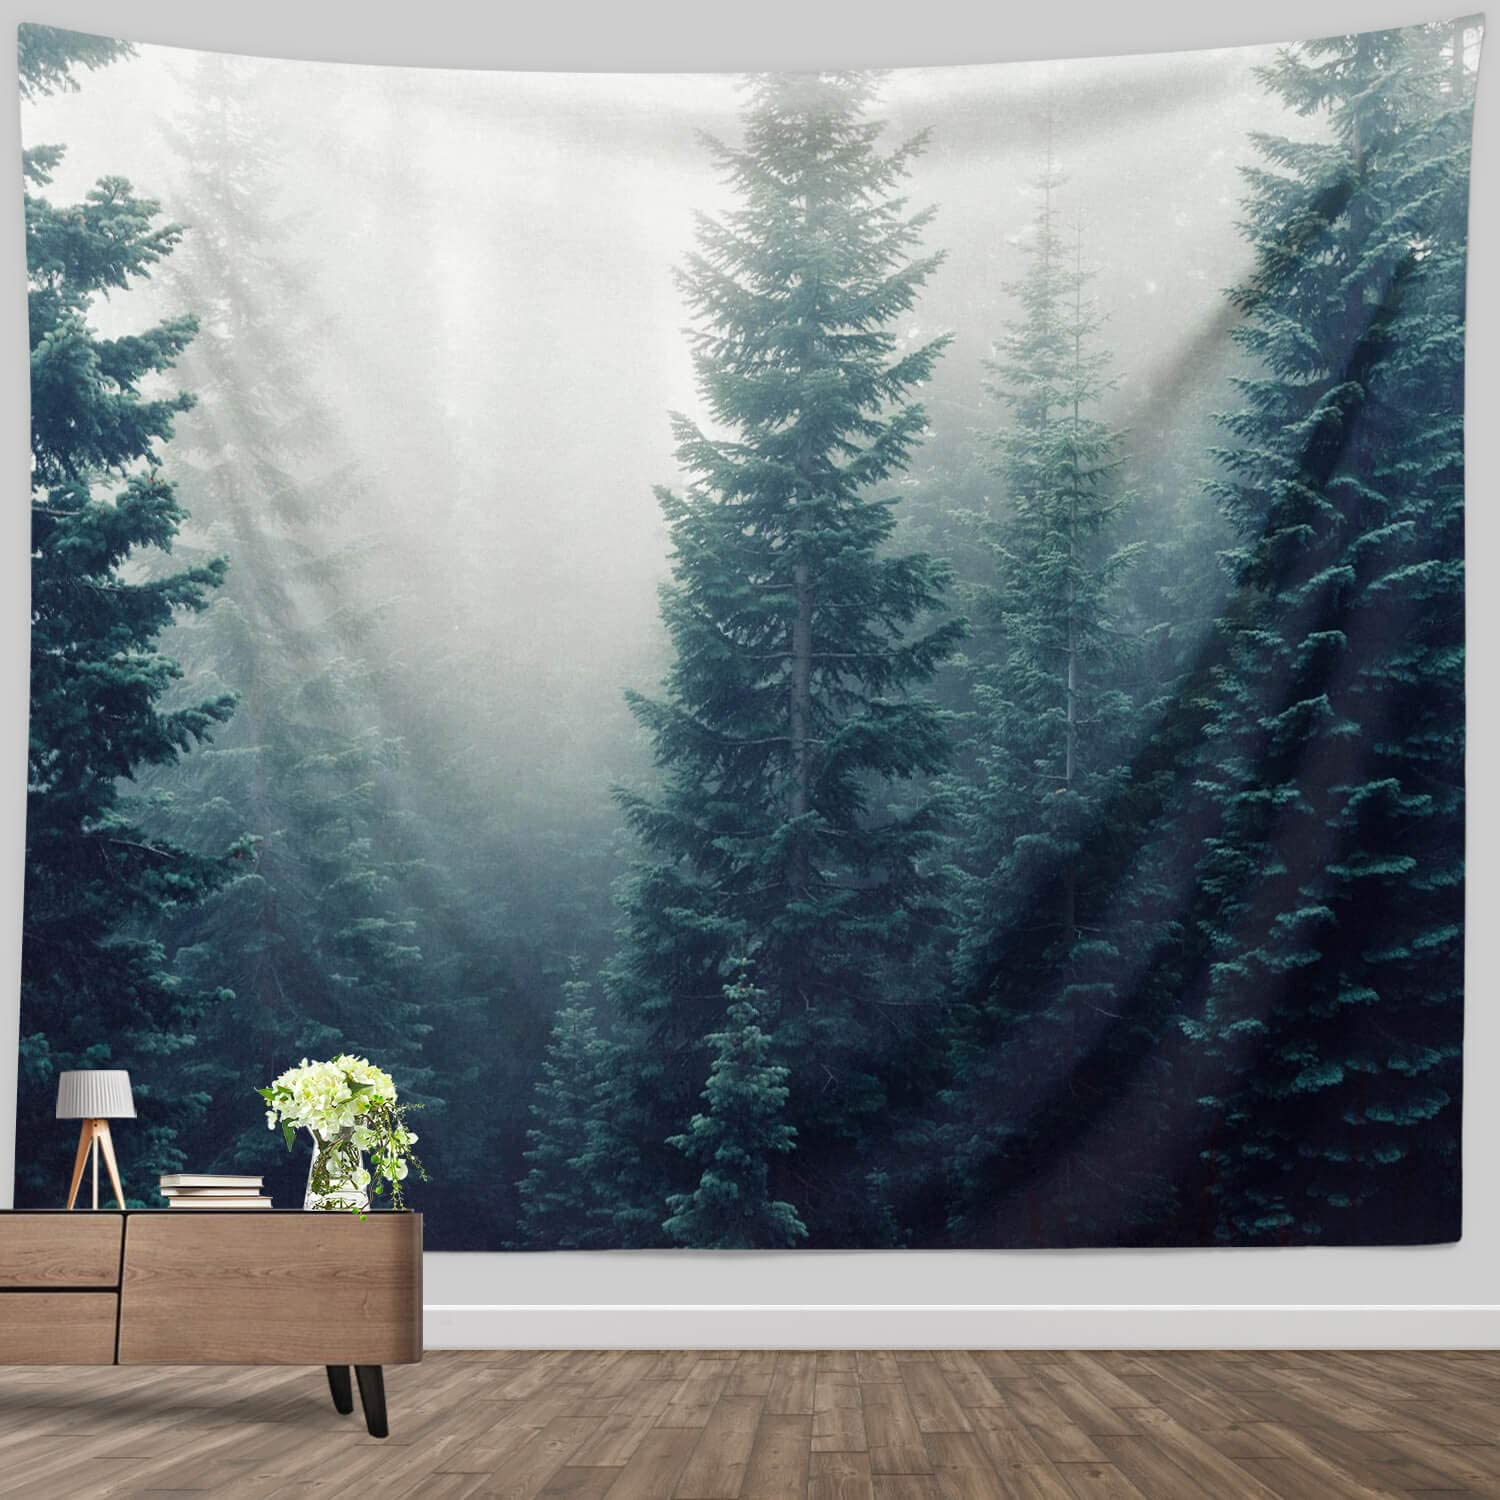 Green Tree Forest Decor Tapestry,Pine Tree Tapestry Wall Hanging Room home decoration Nature Landscape Wall Tapestry for Bedroom Living Room Dorm,52x60 Inch Long